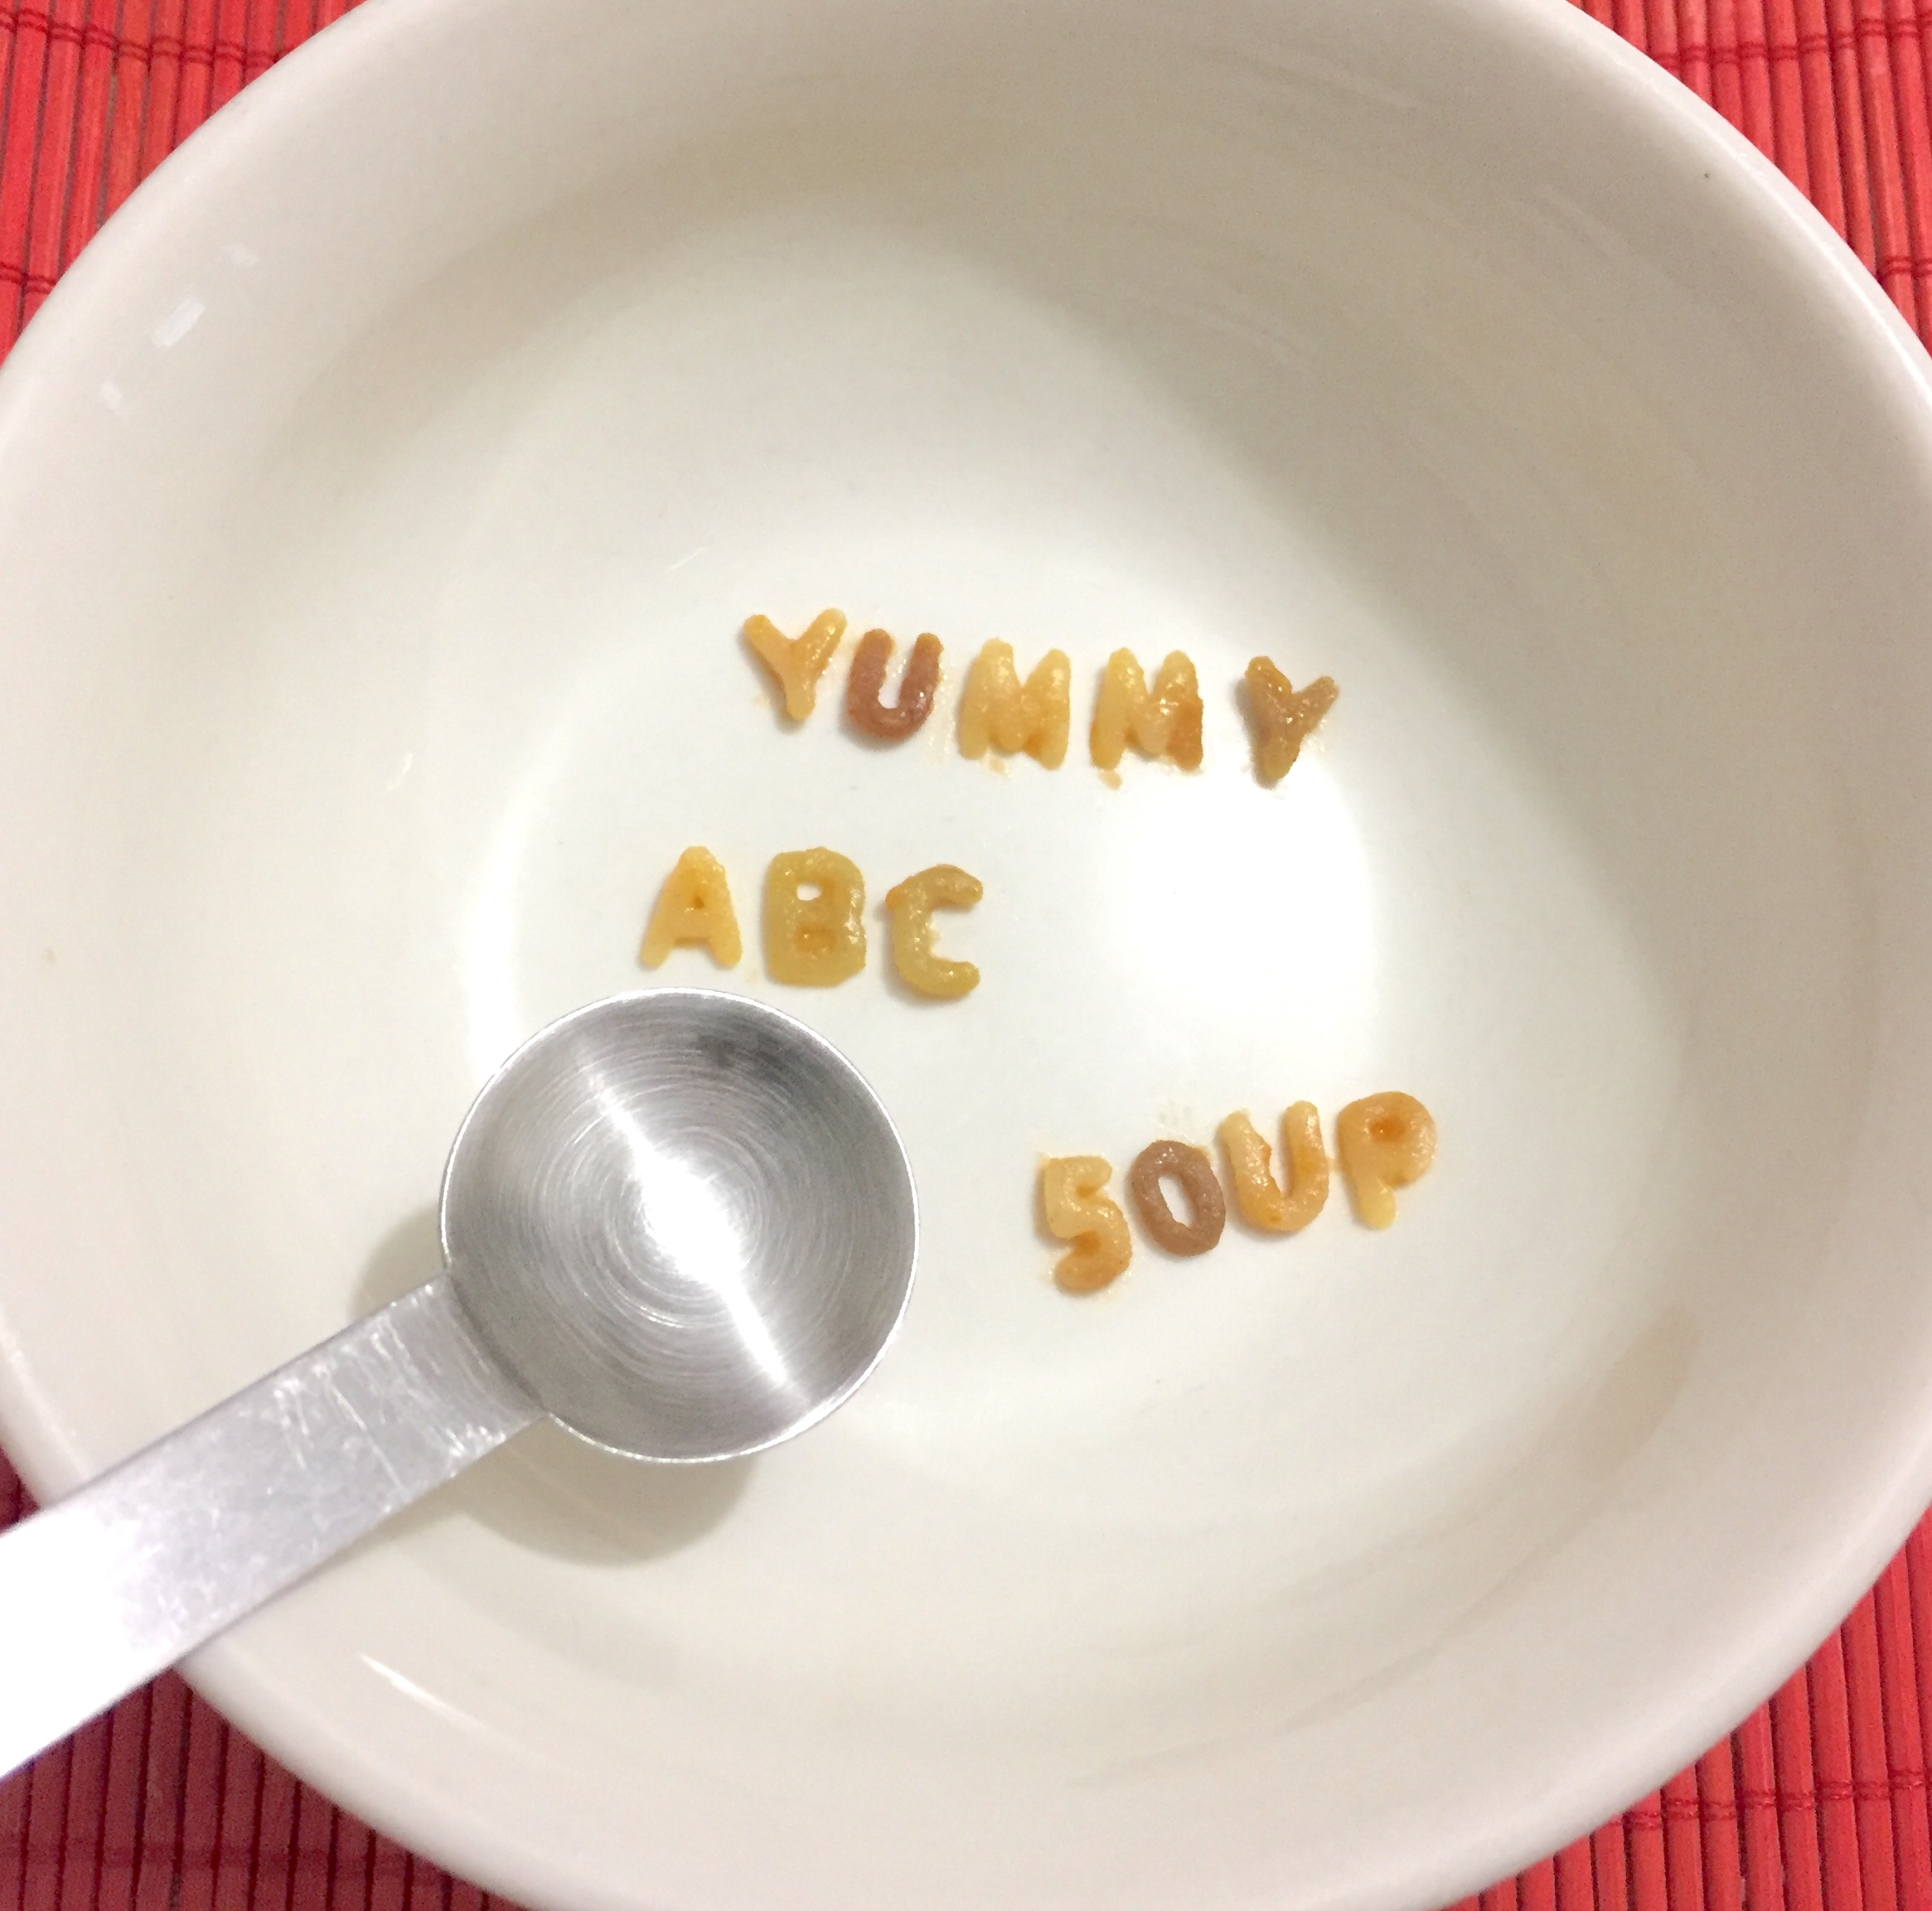 Picture of Yummy ABC Soup